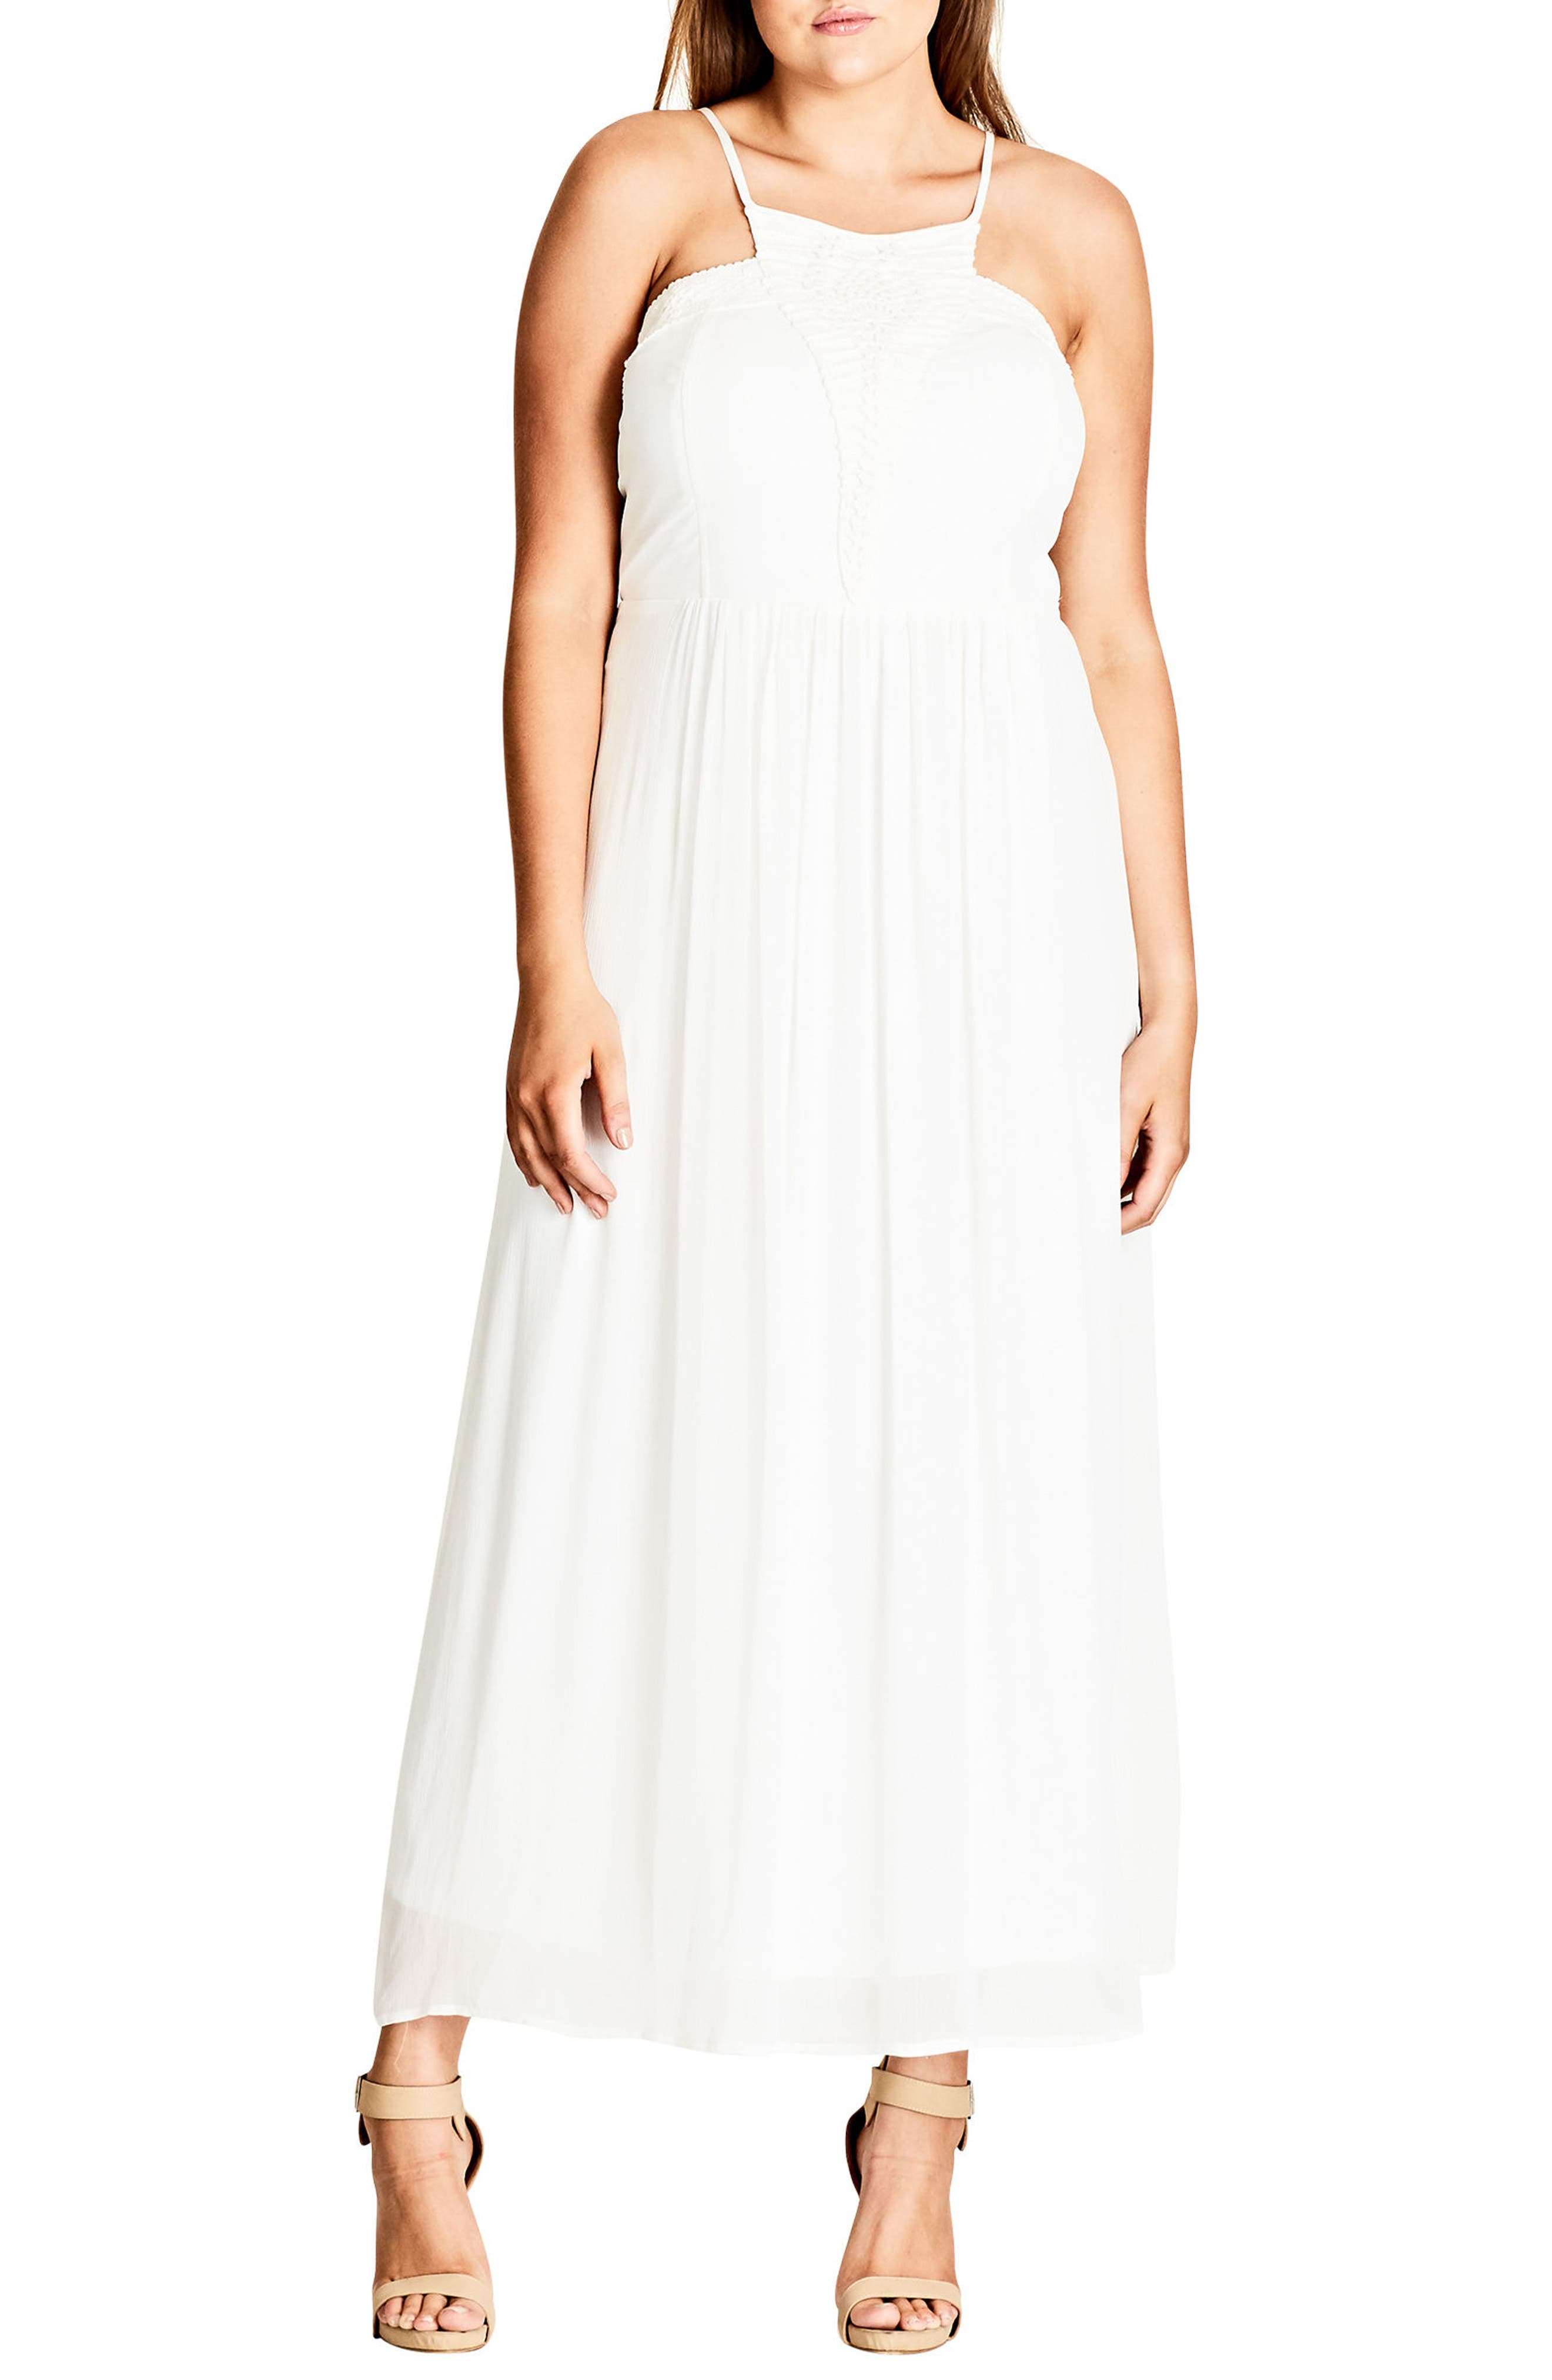 Alternate Image 1 Selected - City Chic Purity Halter Style Maxi Dress (Plus Size)